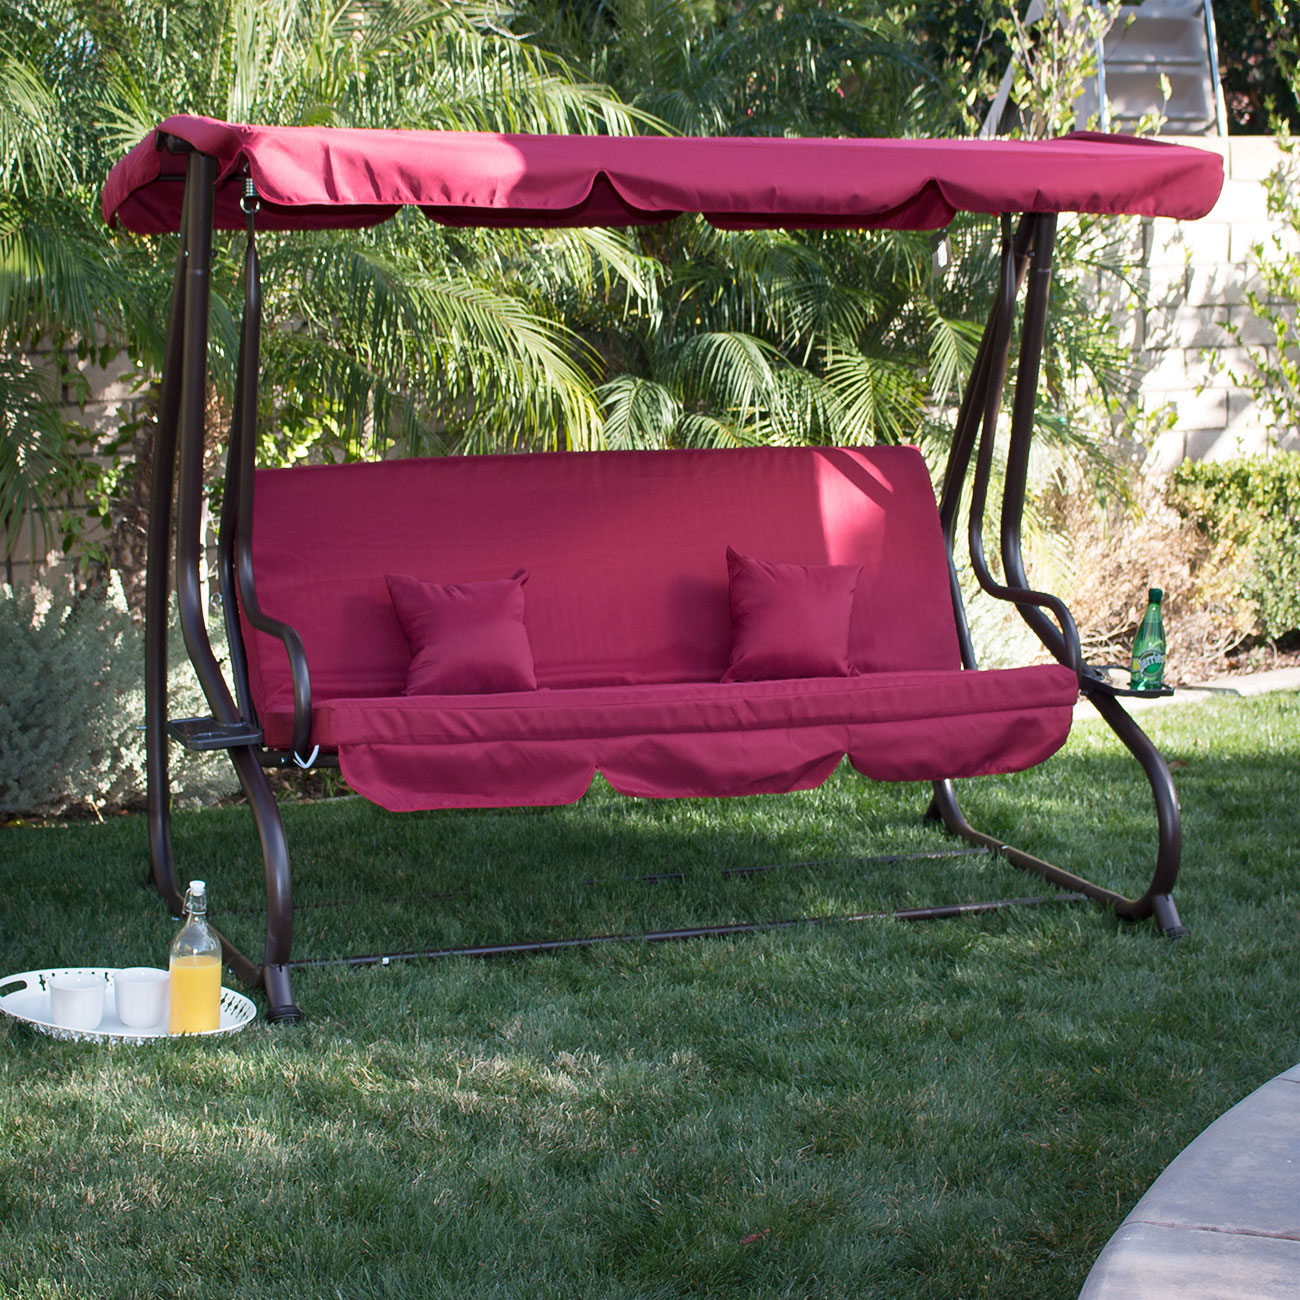 single person hammock chair x rocker gaming cables for xbox one 3 outdoor swing w canopy seat patio